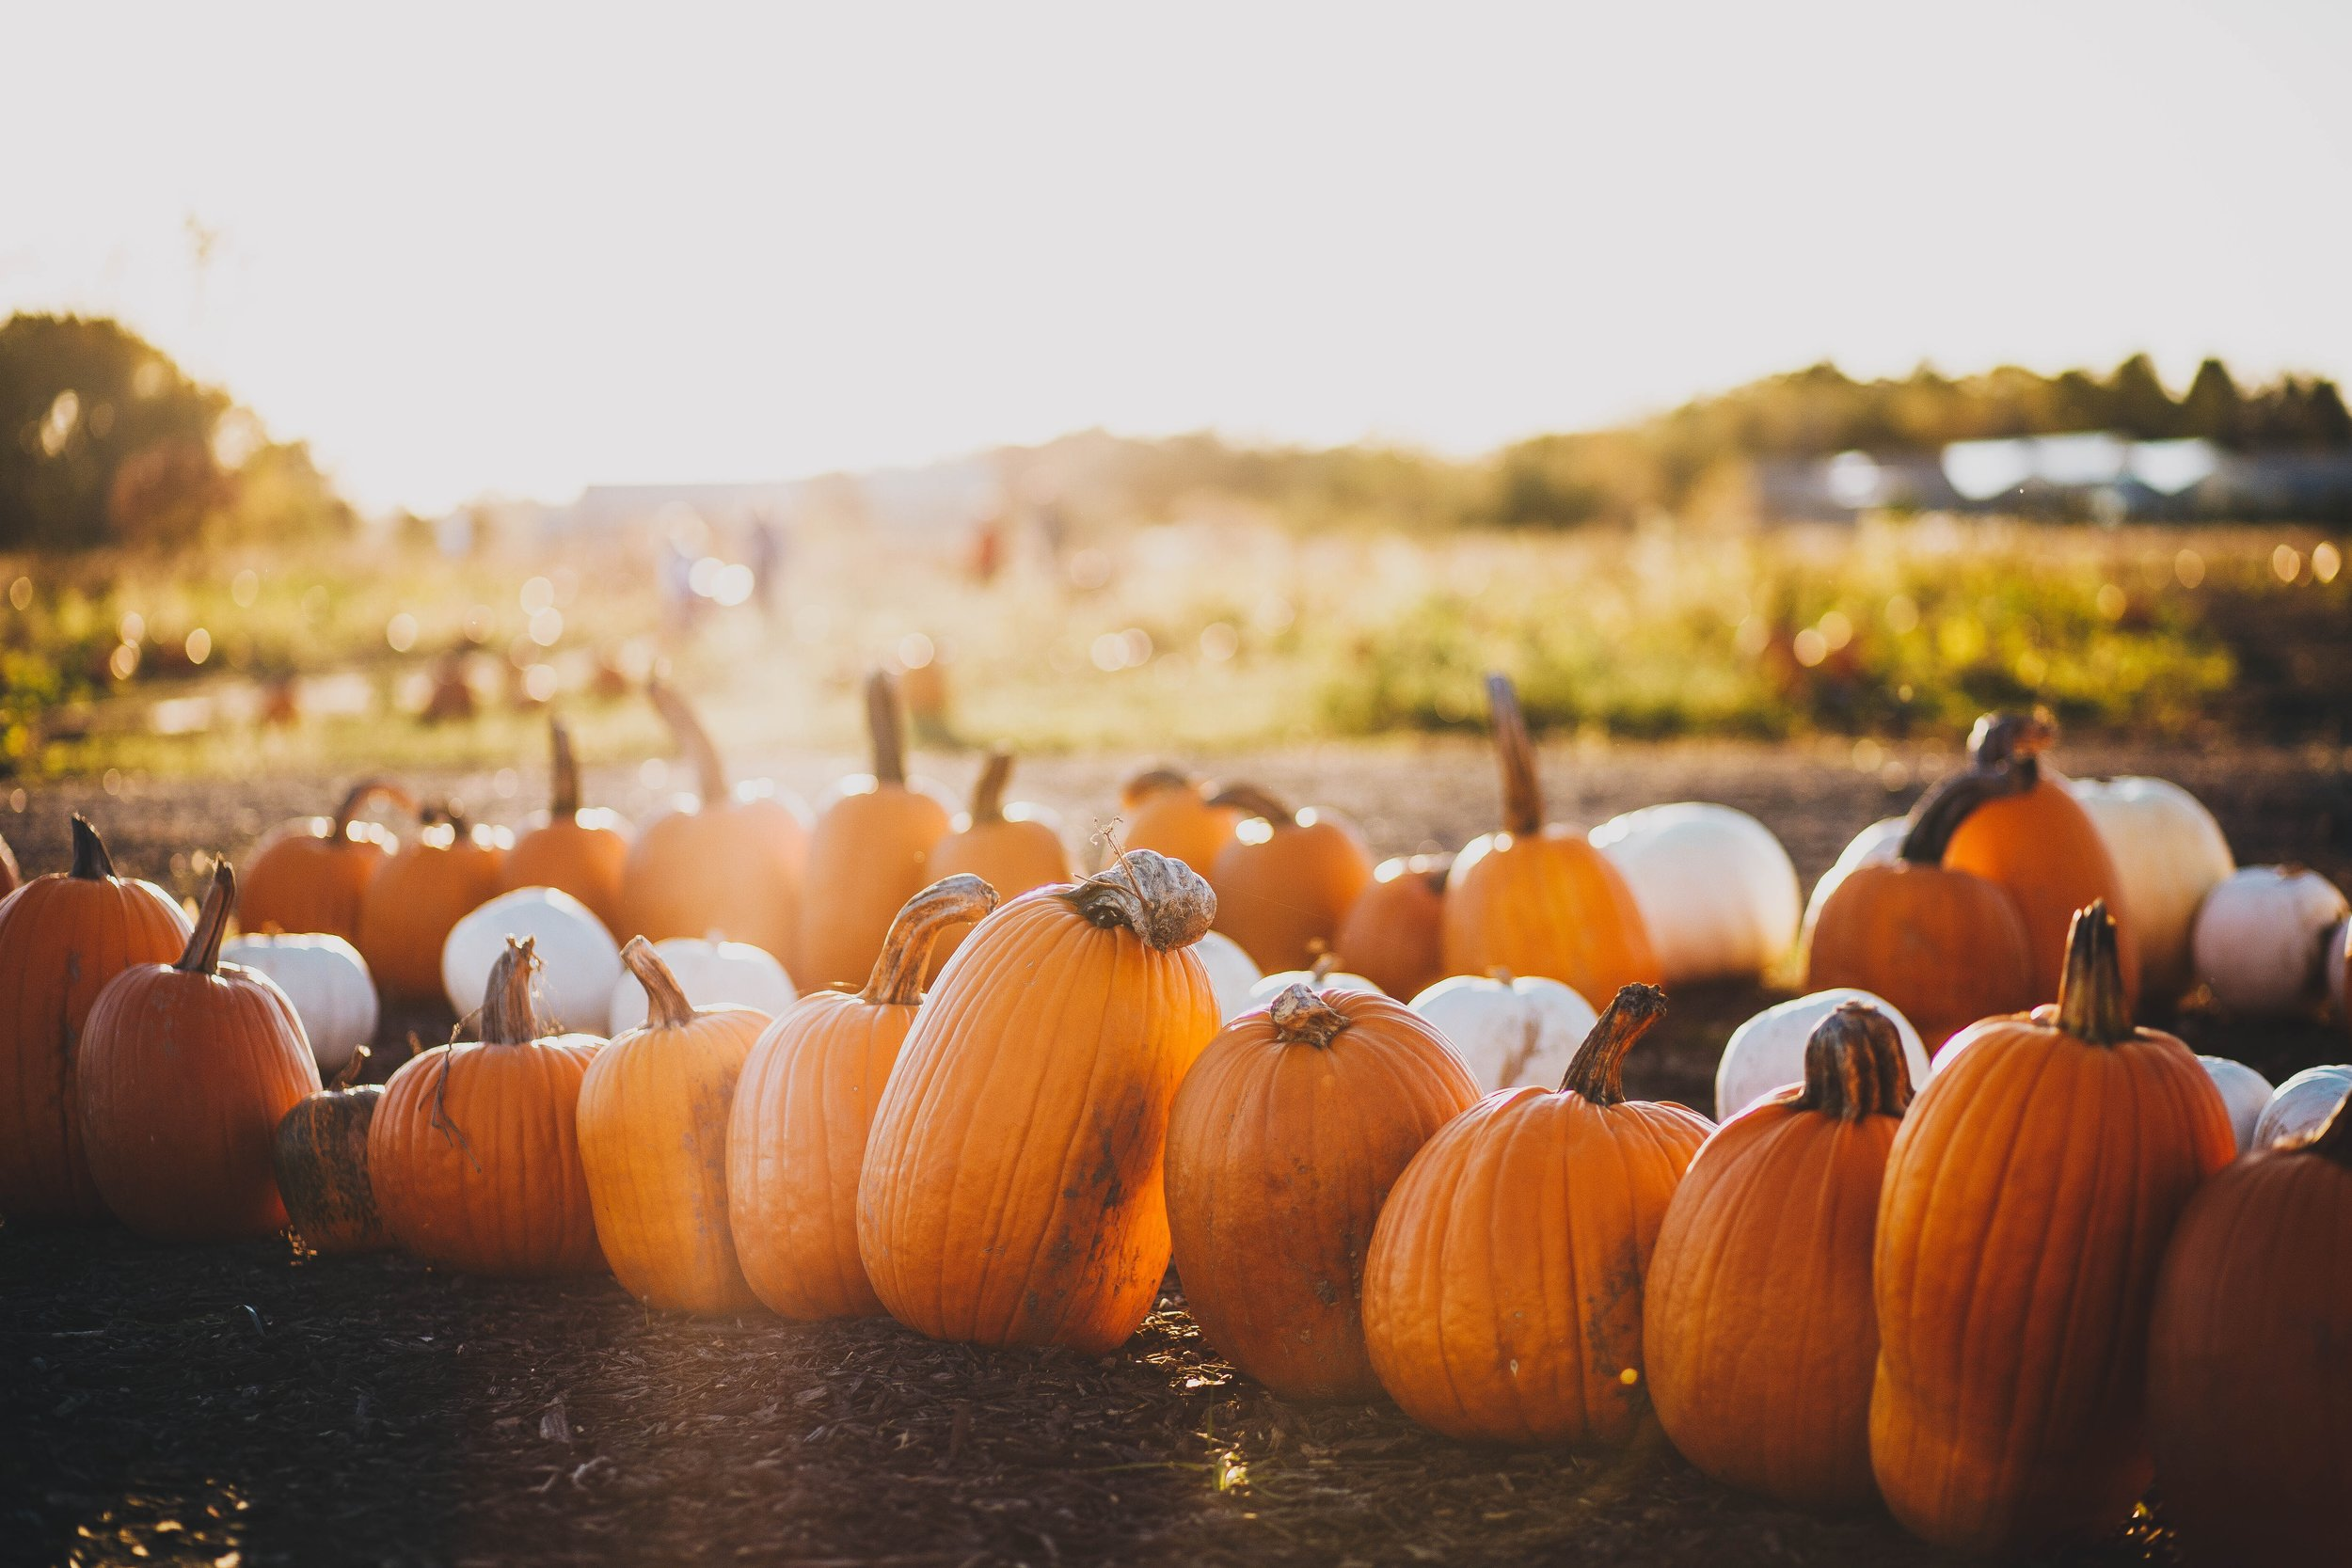 Freshly plucked pumpkins from a patch.  Source: unsplash.com